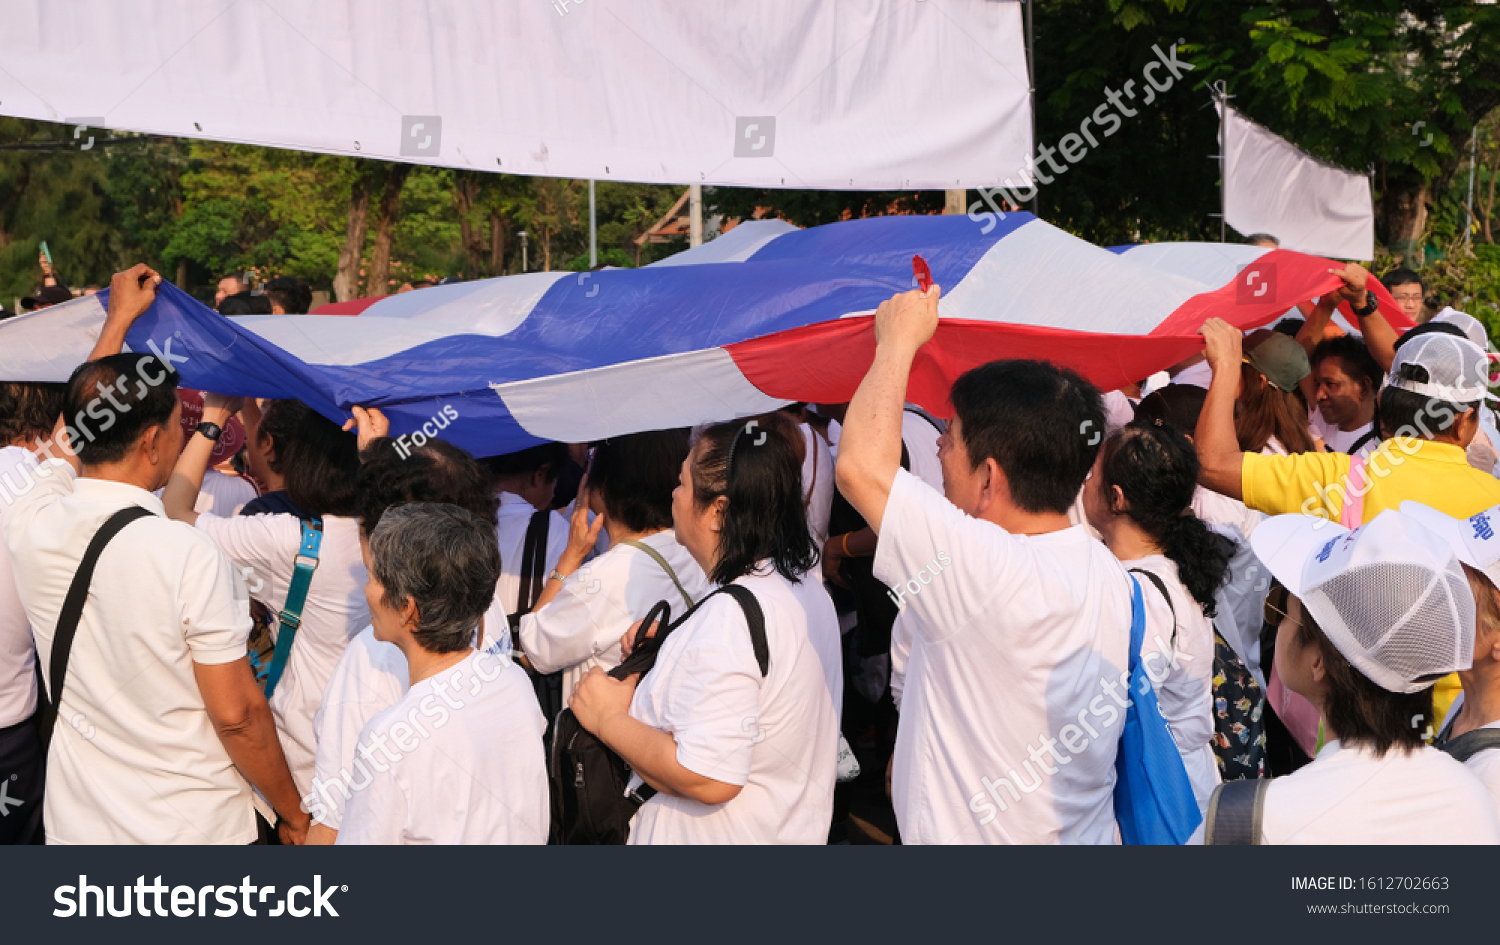 BANGKOK, THAILAND - JANUARY 12, 2020: People walk under a large Thai flag at an event showing support to Prime Minister Prayut on January 12, 2020 in  Thai capital Bangkok